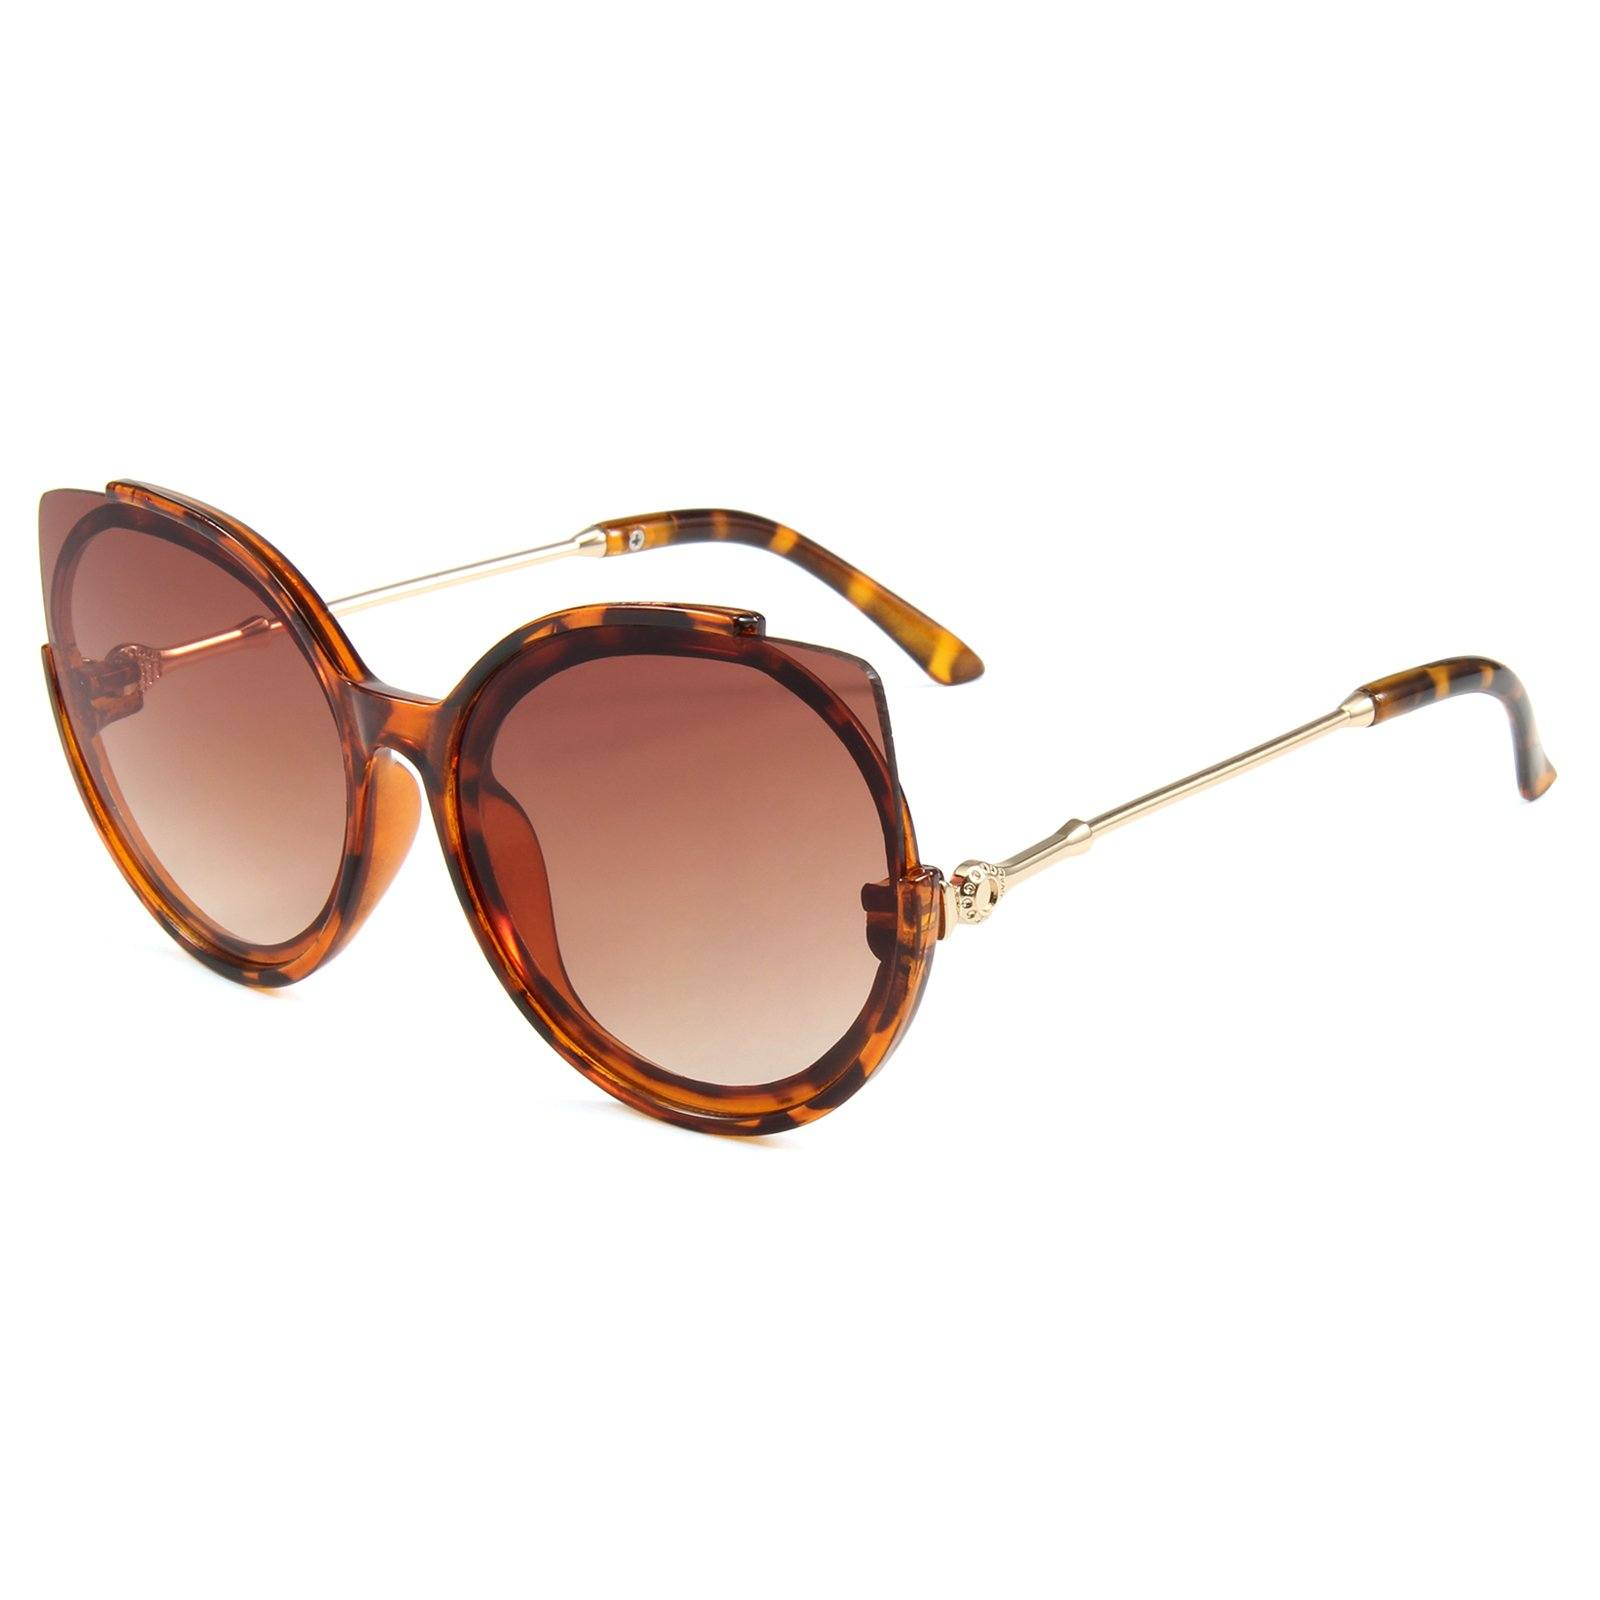 Kitty Sunglasses (Tortoise Shell)